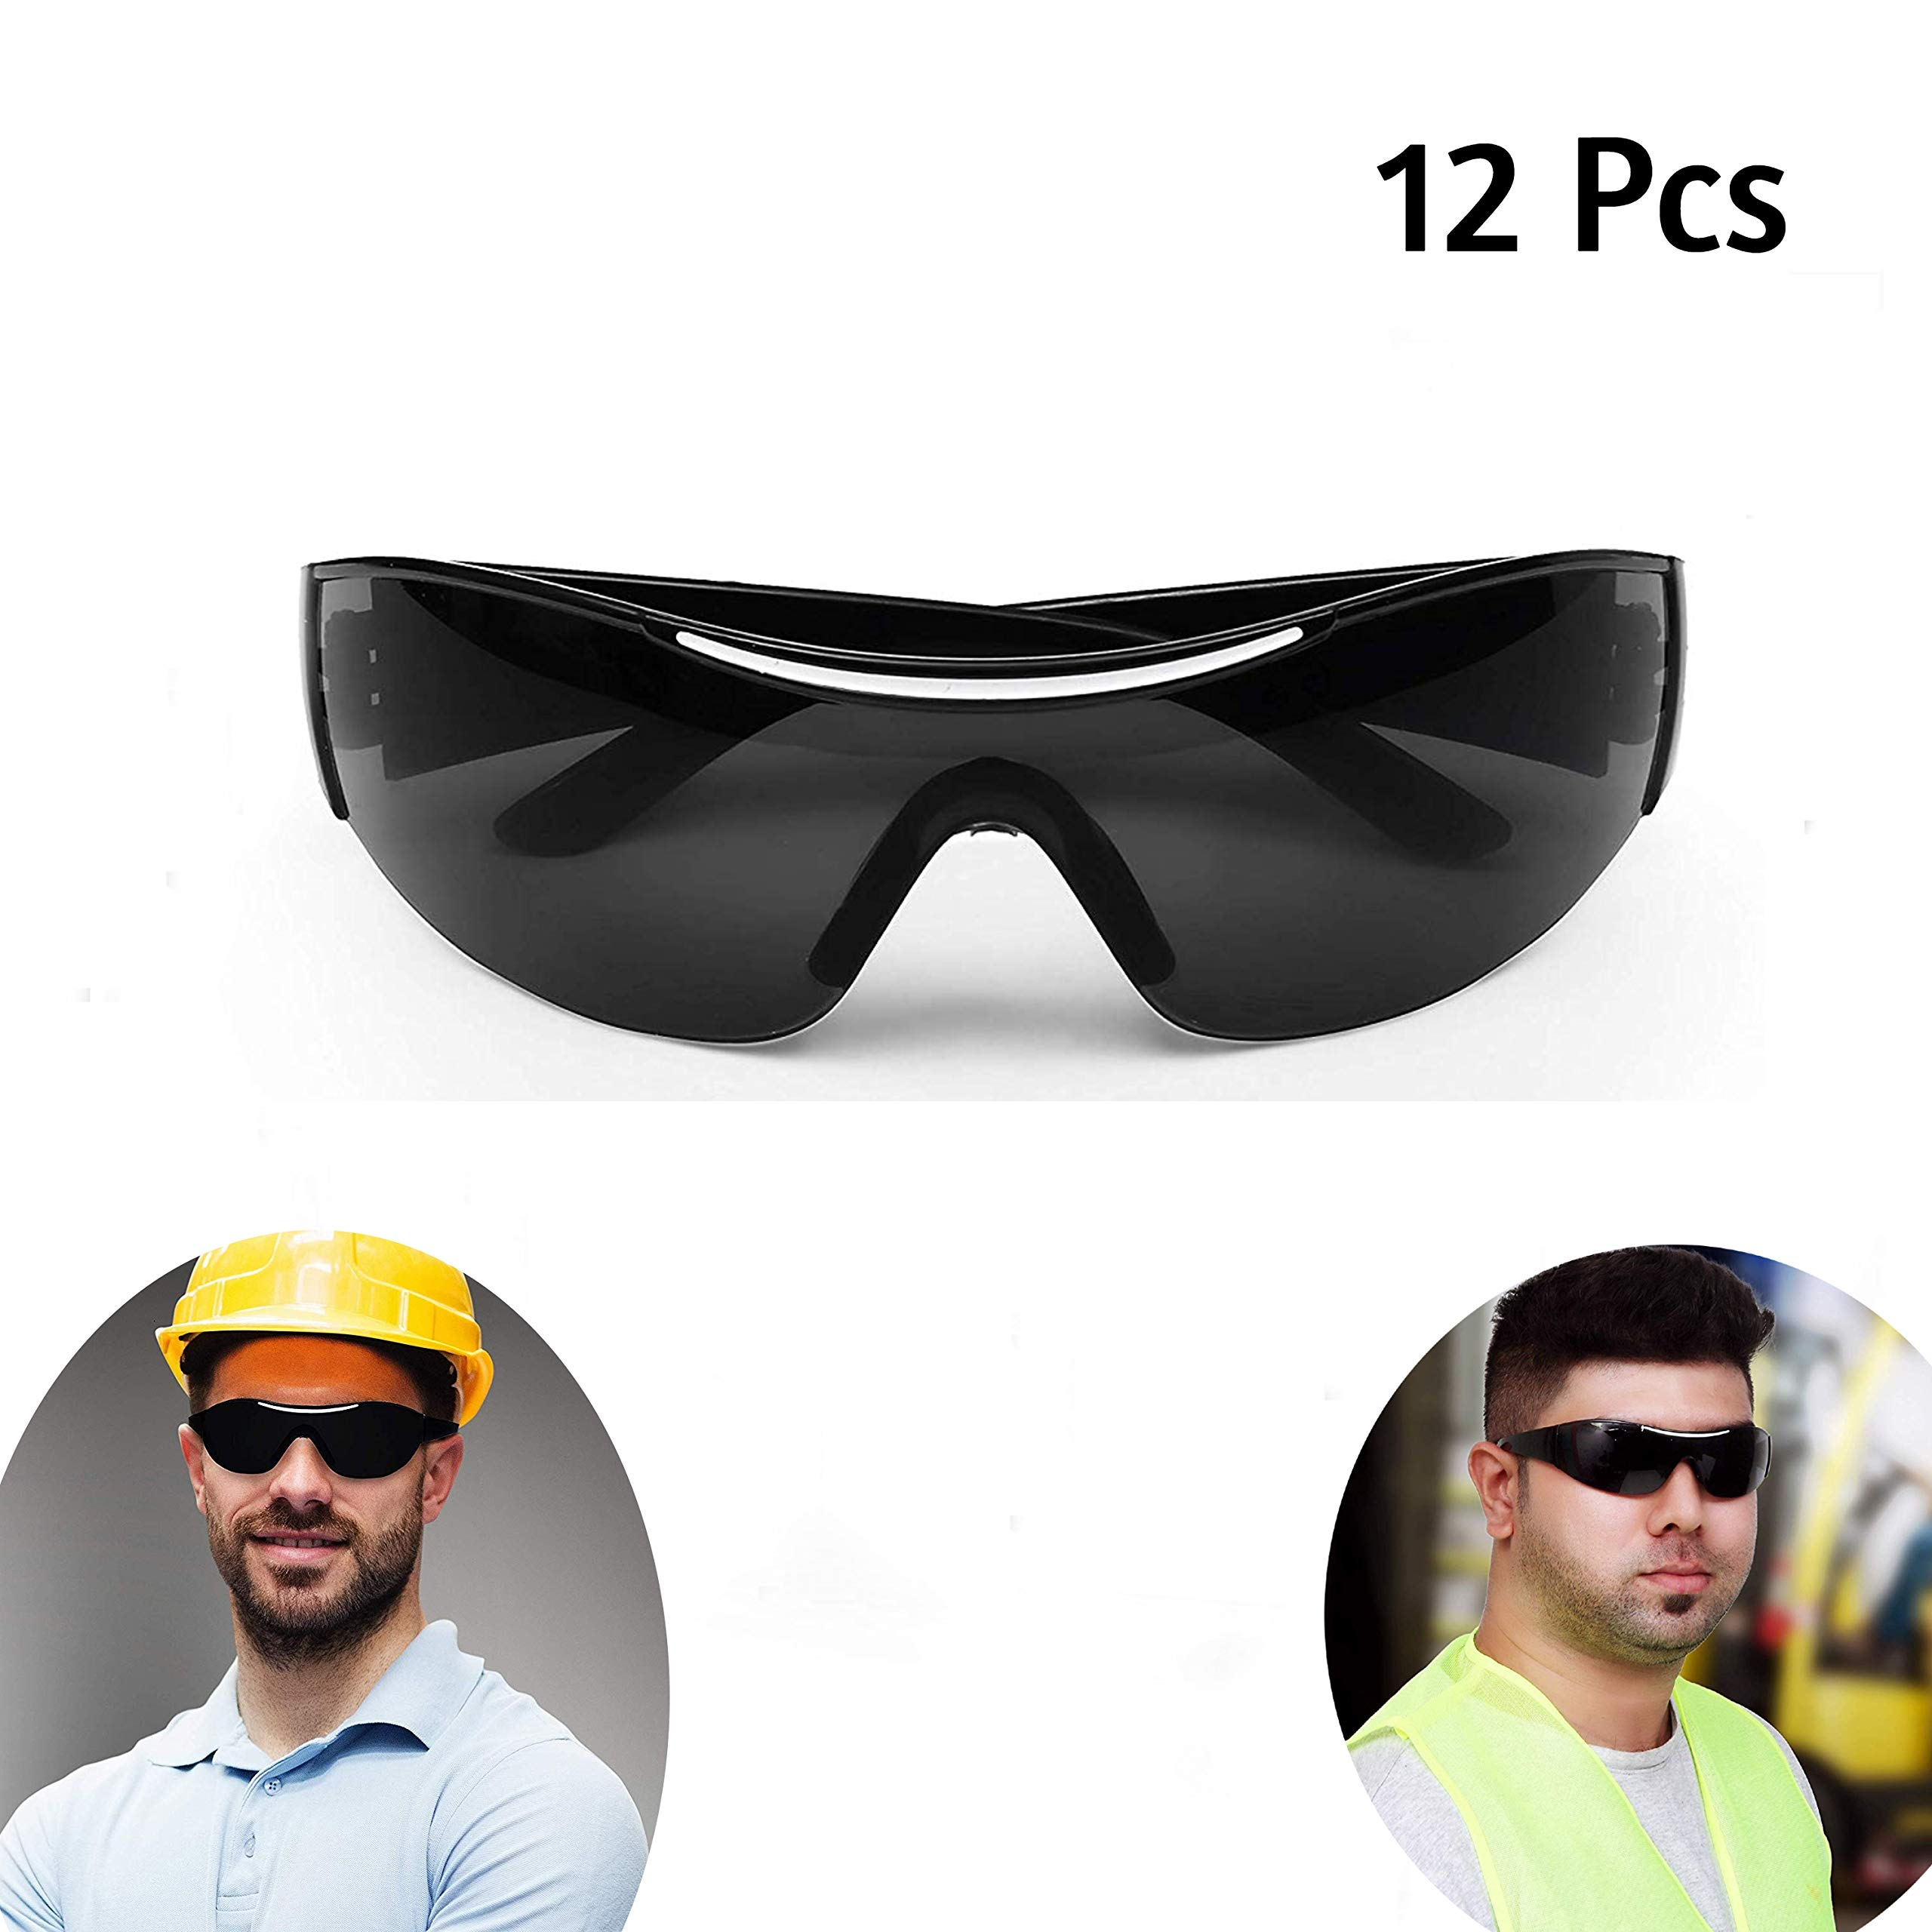 Safety Glasses - (12Pcs) Black Safety Glasses, Protective Glasses, Safety Goggles Eyewear Eyeglasses - Personal Protective Equipment (PPE) with Black Lenses Featuring Non Slip Grip for Comfortable Fit